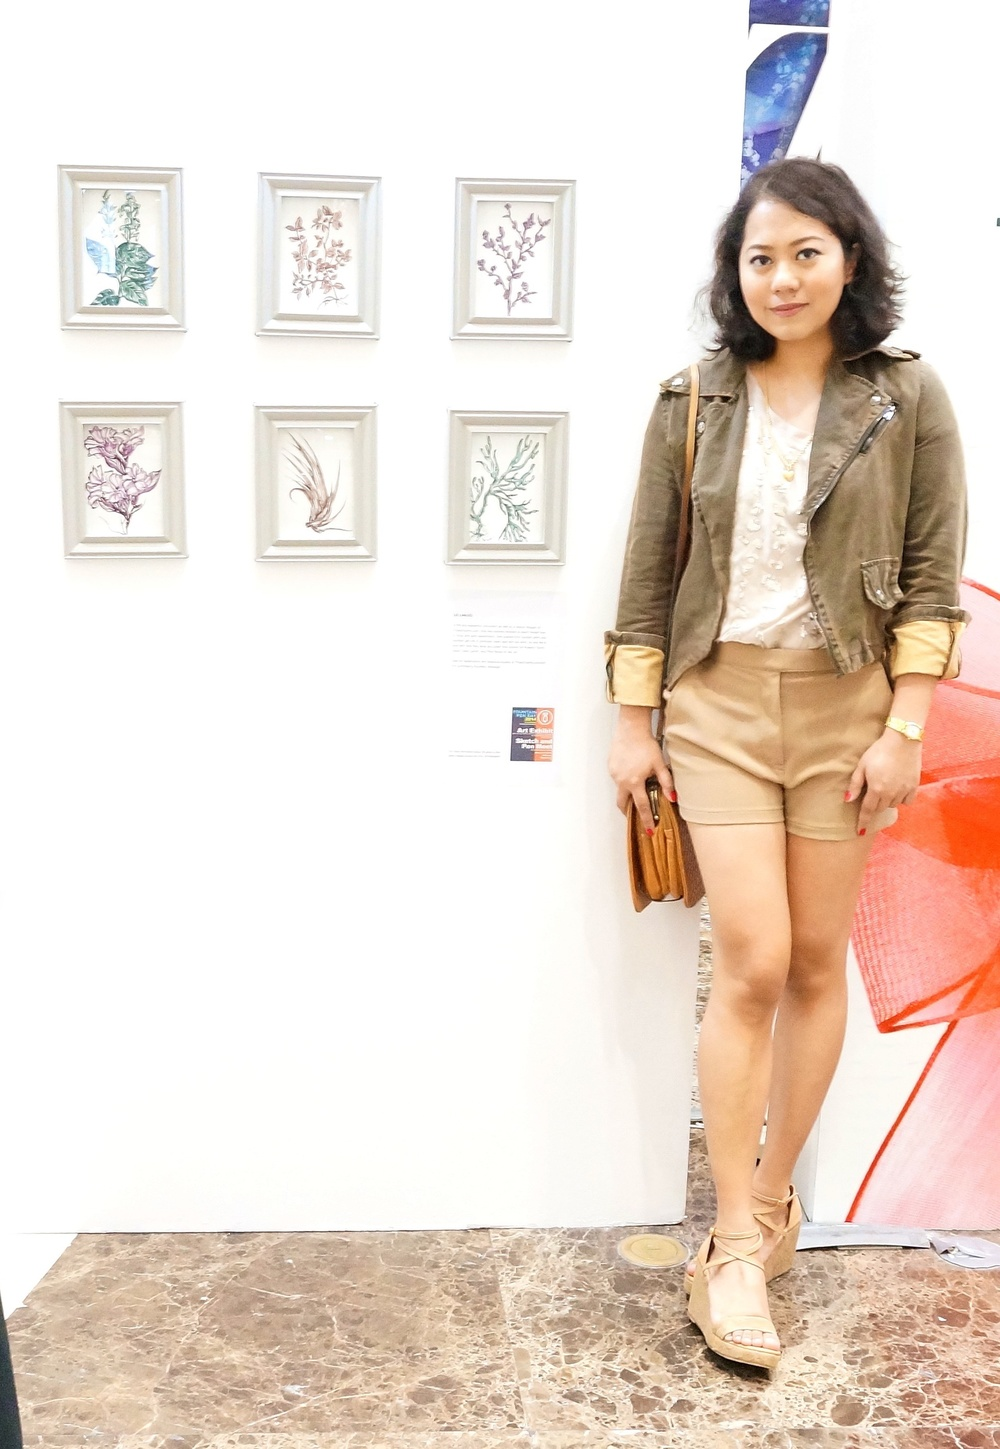 At my first ever art exhibit in SM Aura last November for Fountain Pen Day. Still can't believe this happened, sometimes.